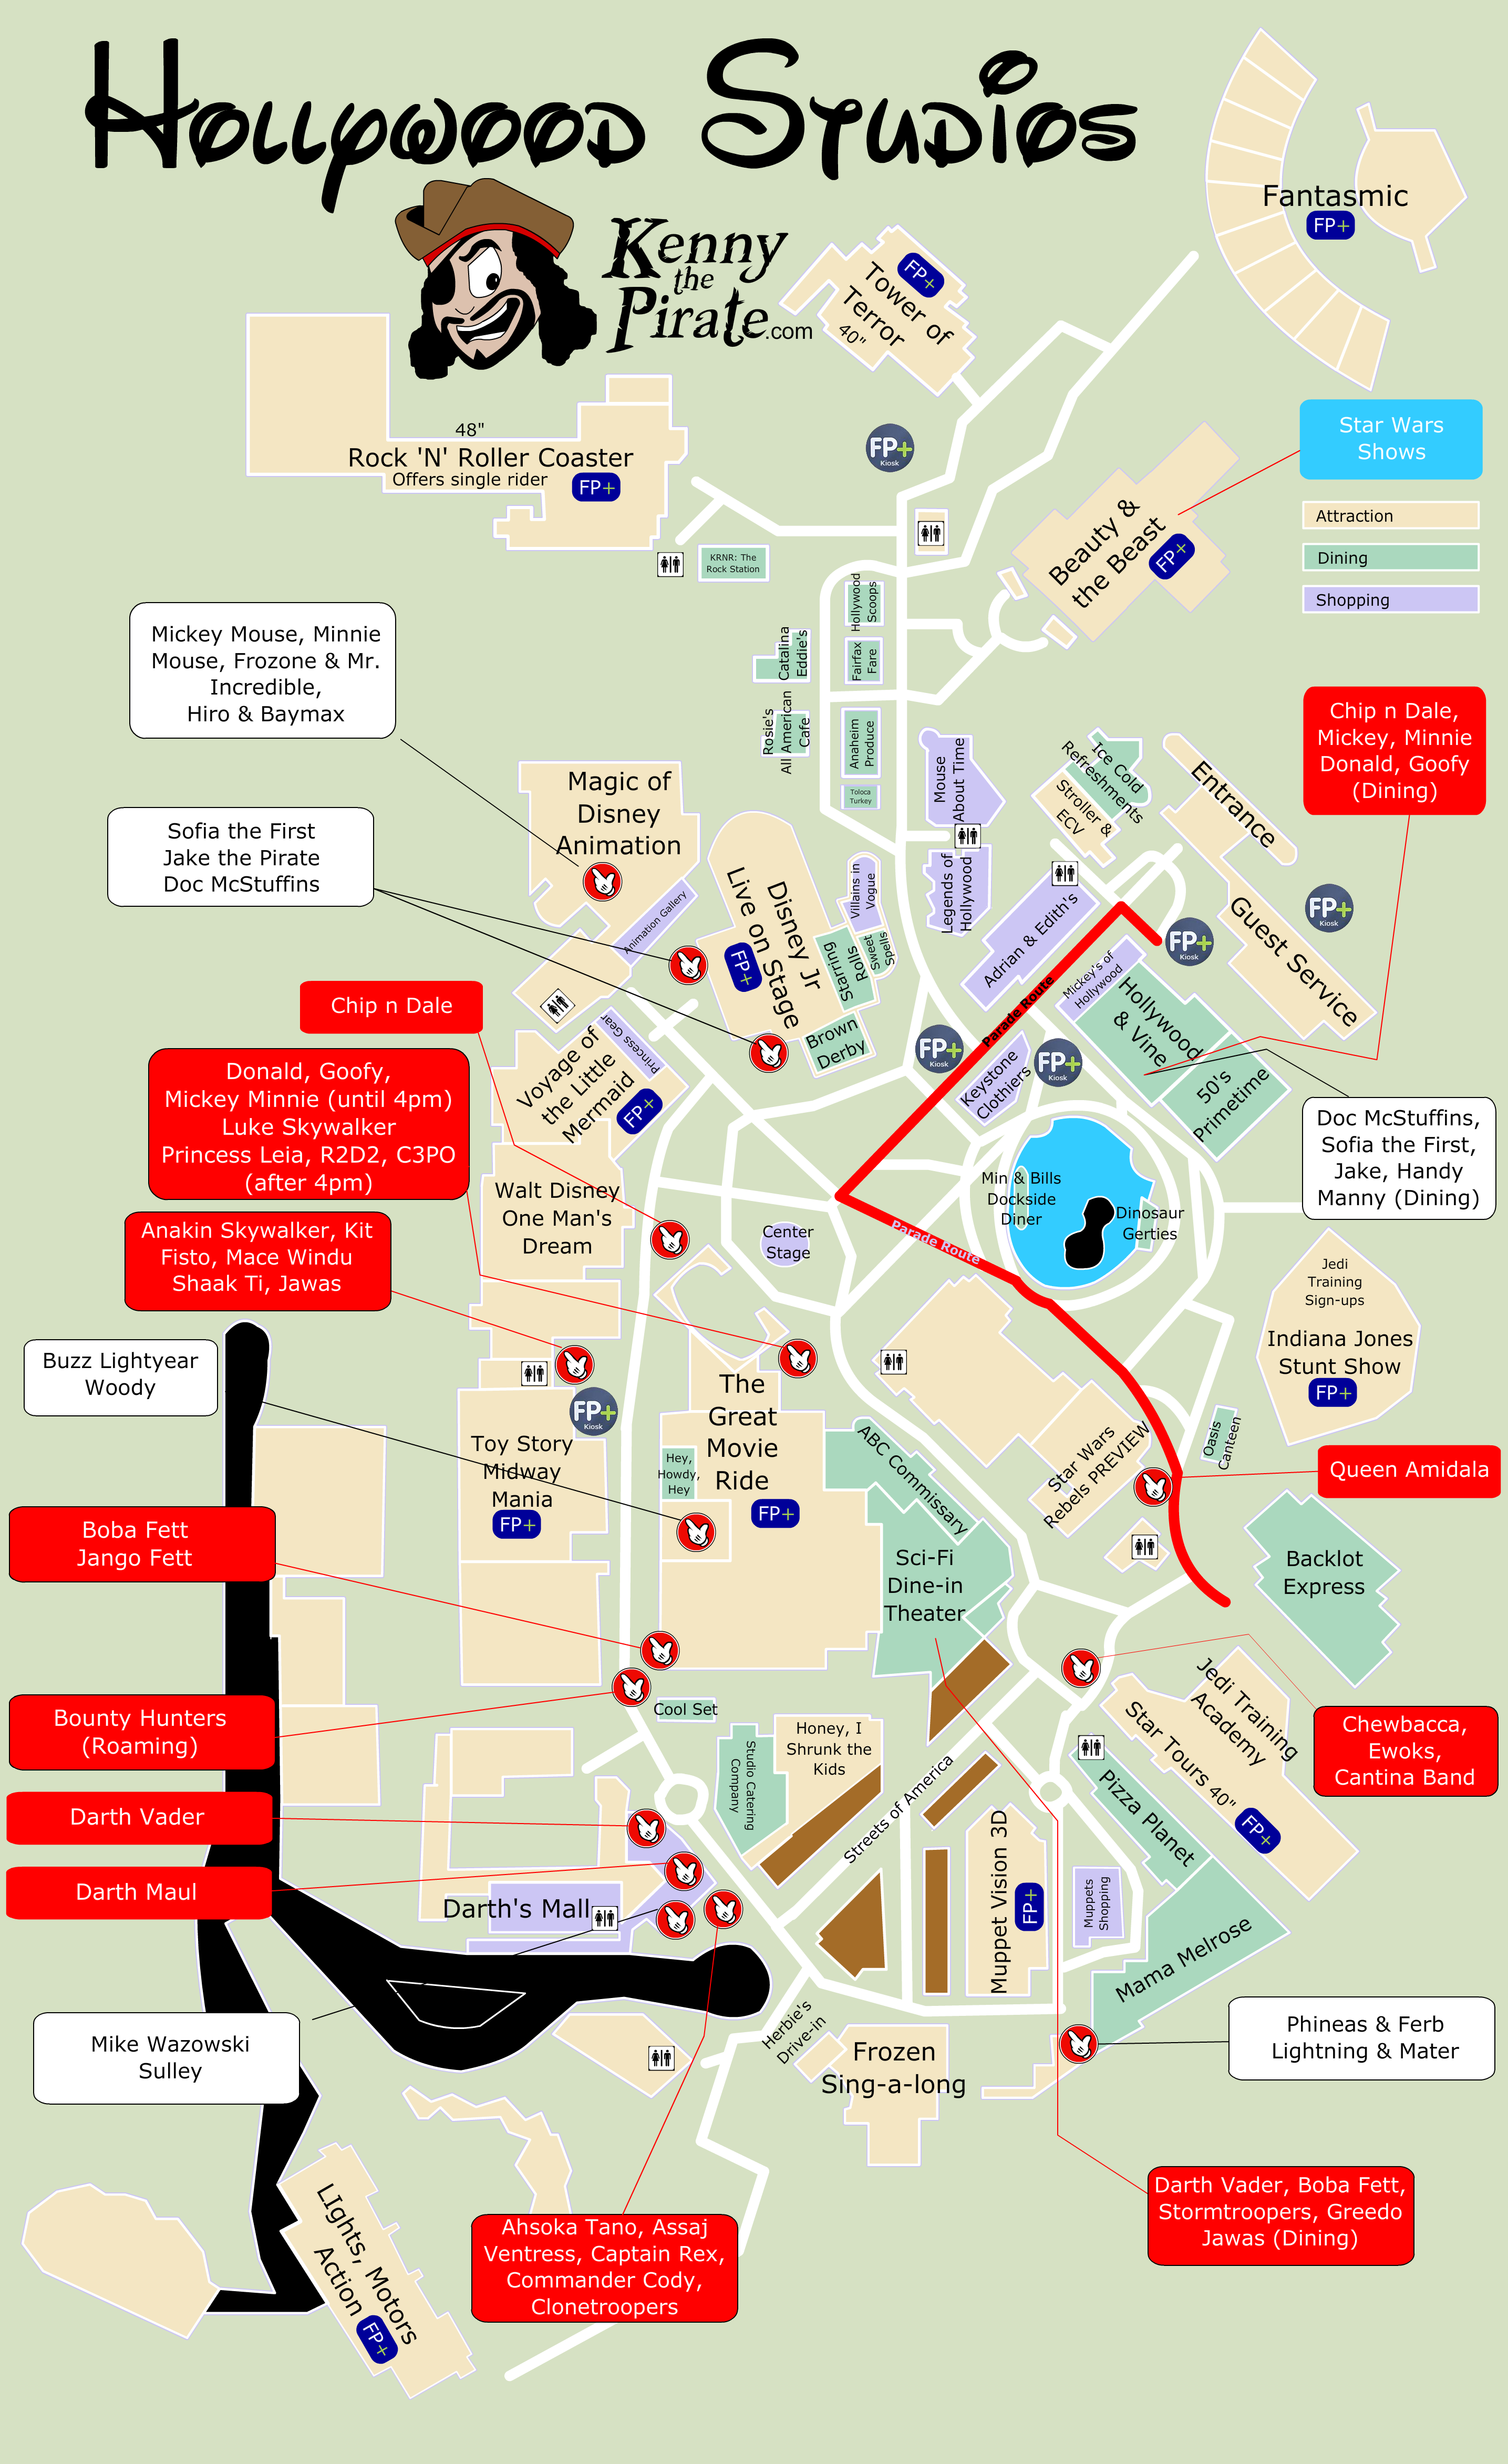 Star Wars Weekends Map with Character Locations